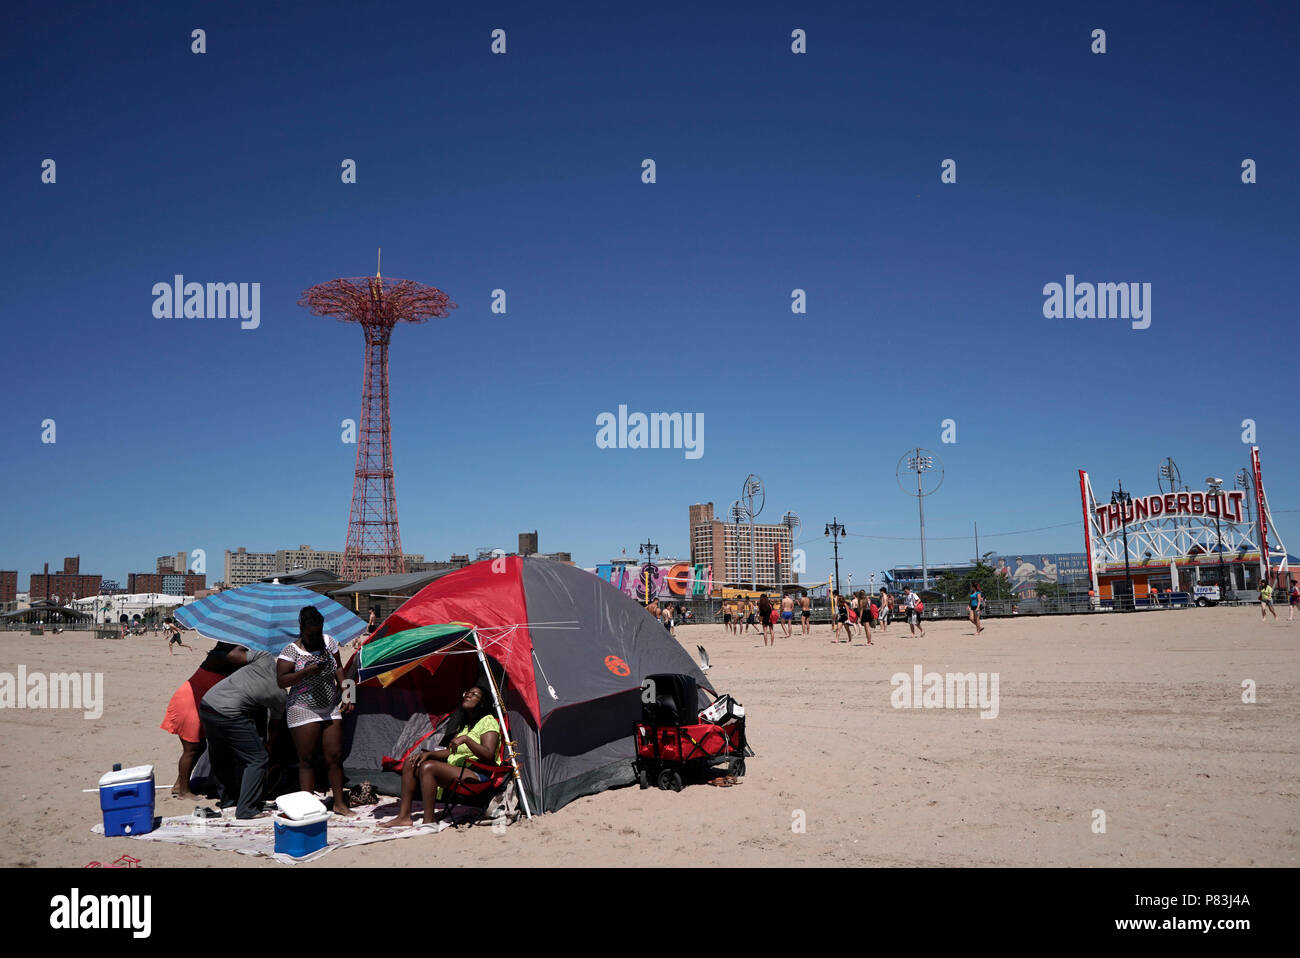 New York, New York, USA. 7th July, 2018. tent with parachute jump ...